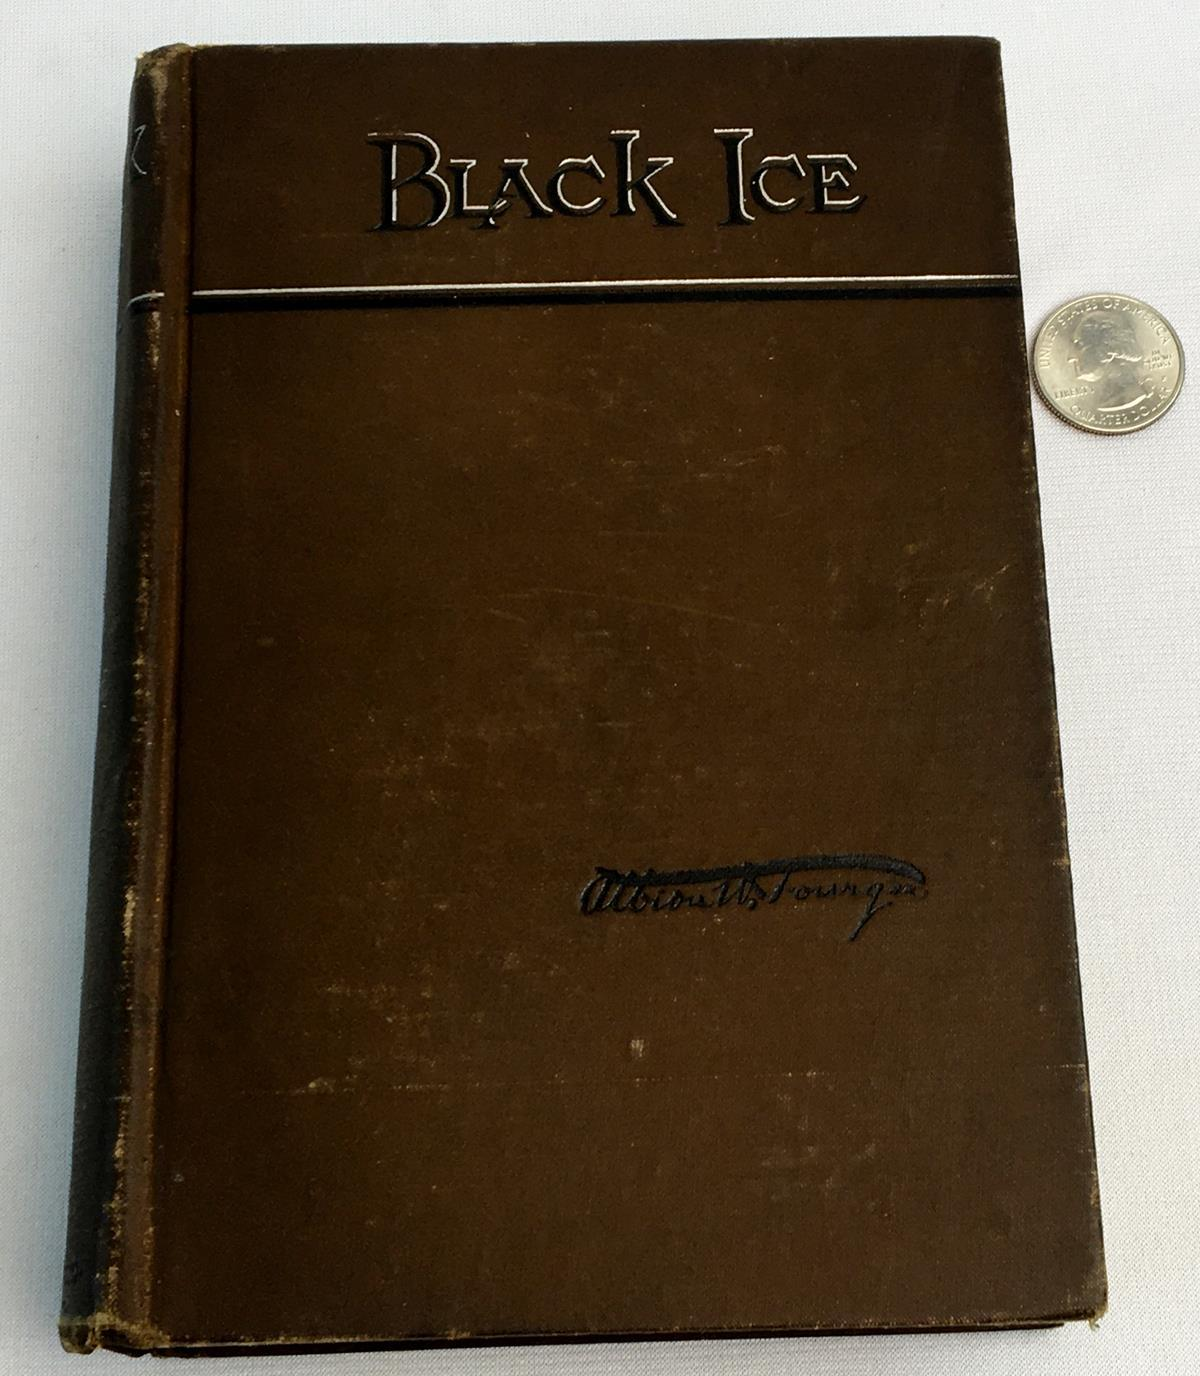 1888 Black Ice by Albion W. Tourgee ILLUSTRATED